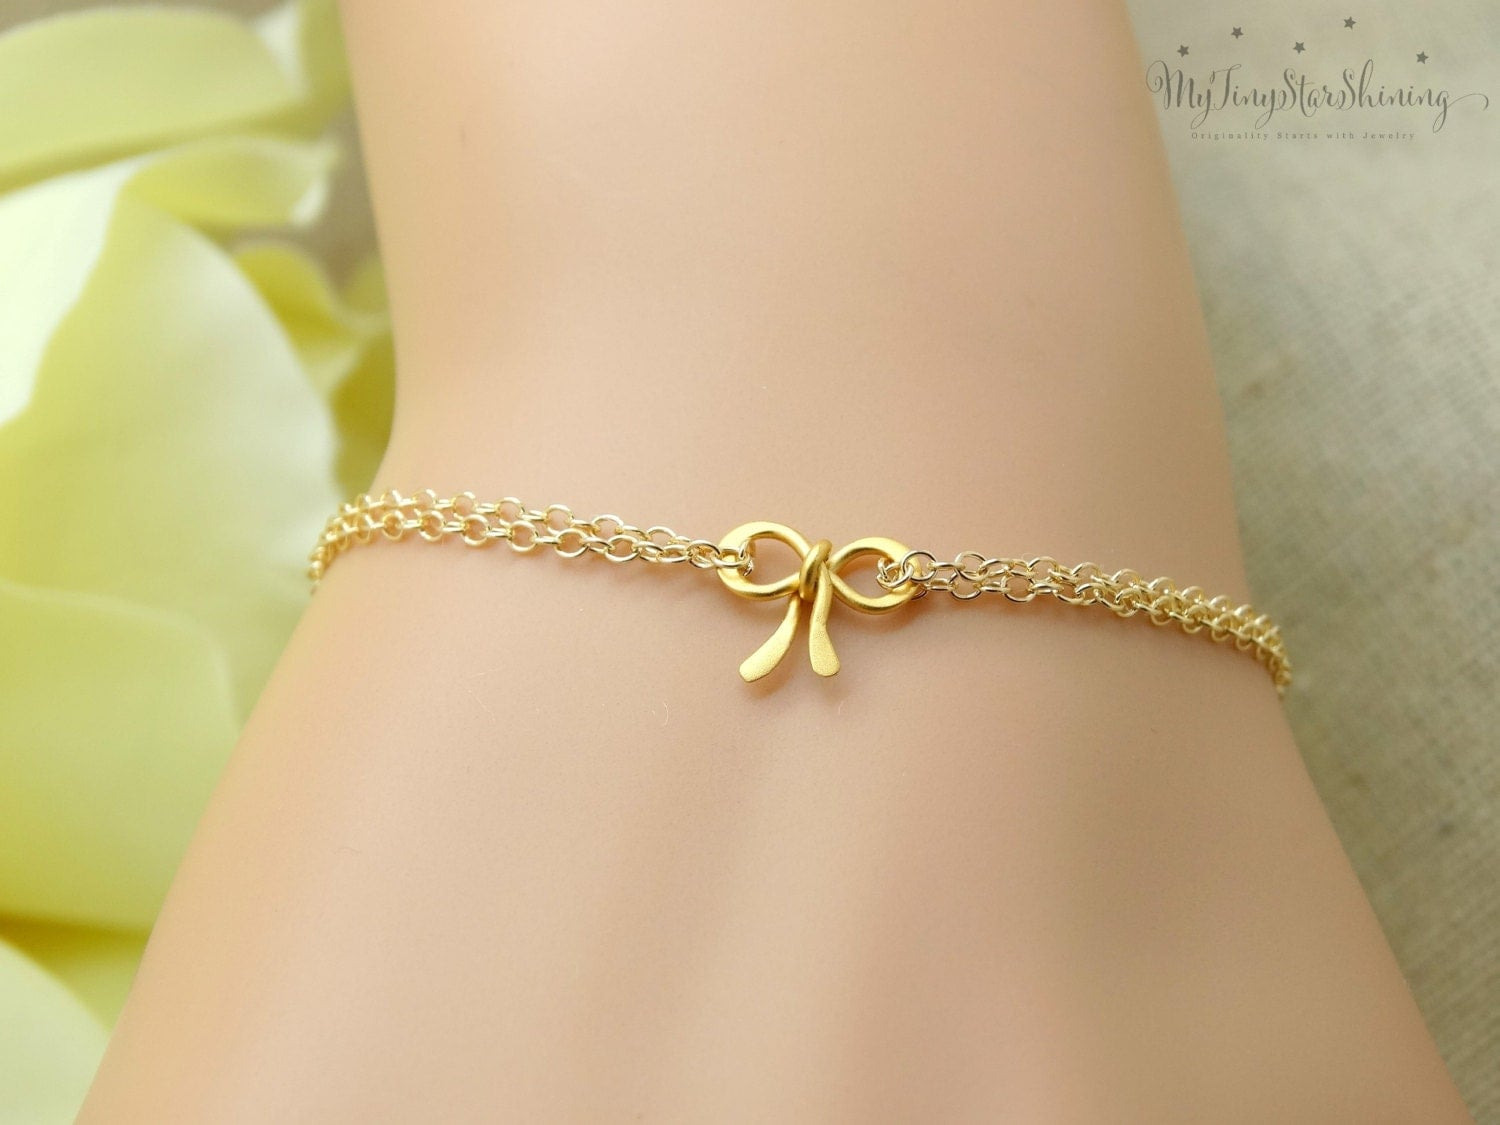 Wedding Gift Calculator The Knot : Tie the knot jewelry Gold Bow jewelry Knot bracelet Bridesmaid gift ...